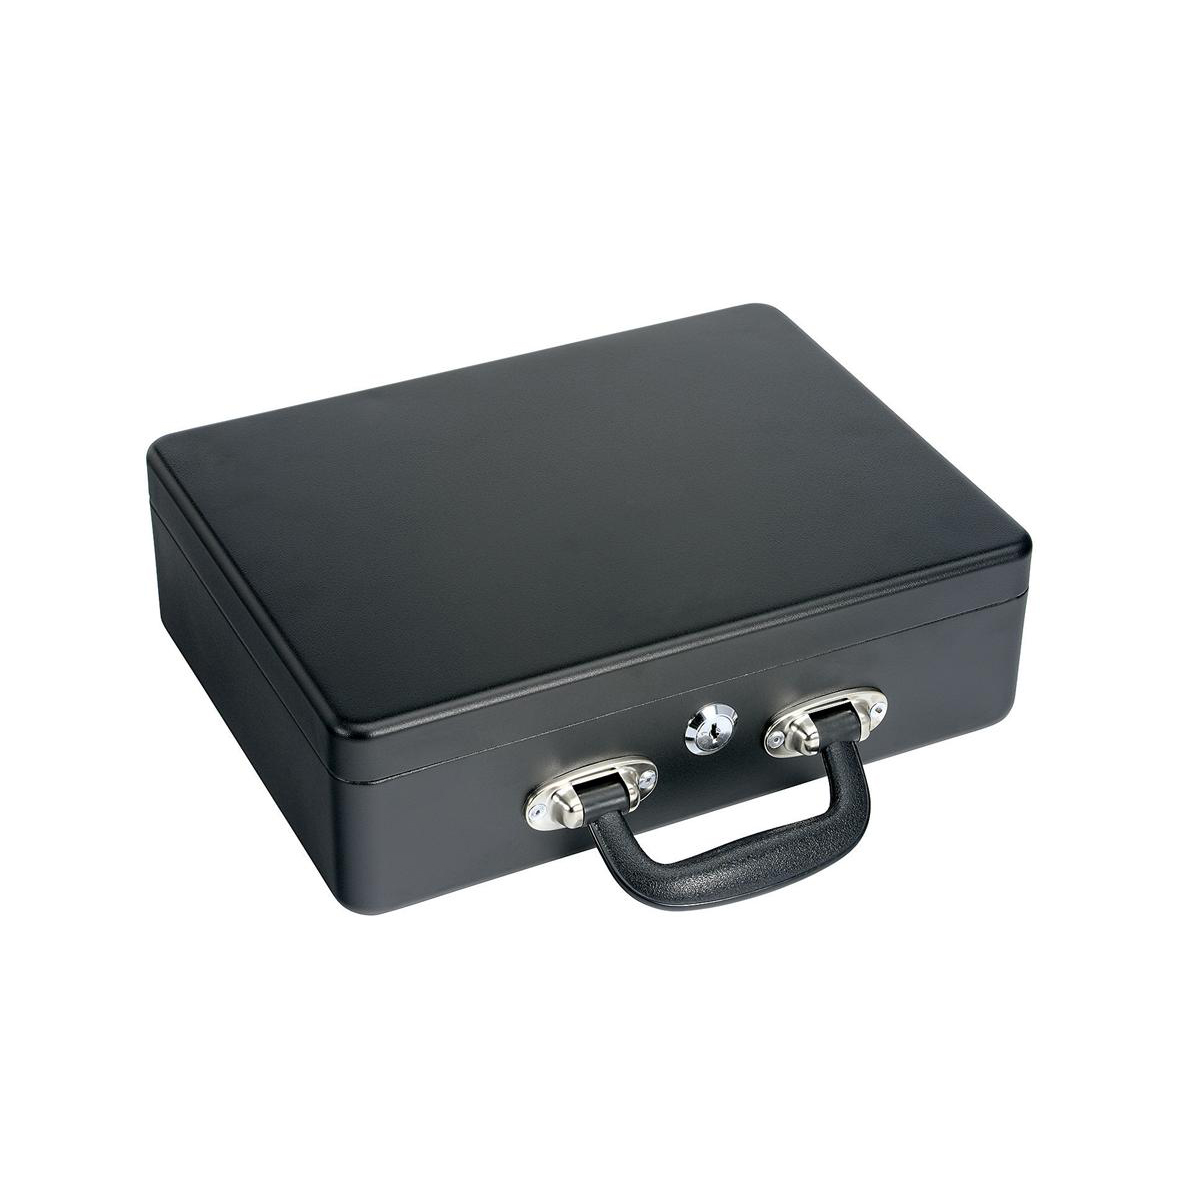 Petty Cash Box With Lock With Organiser Coin Tray 8 Part and Note Section 3 Part W305xD250xH90mm